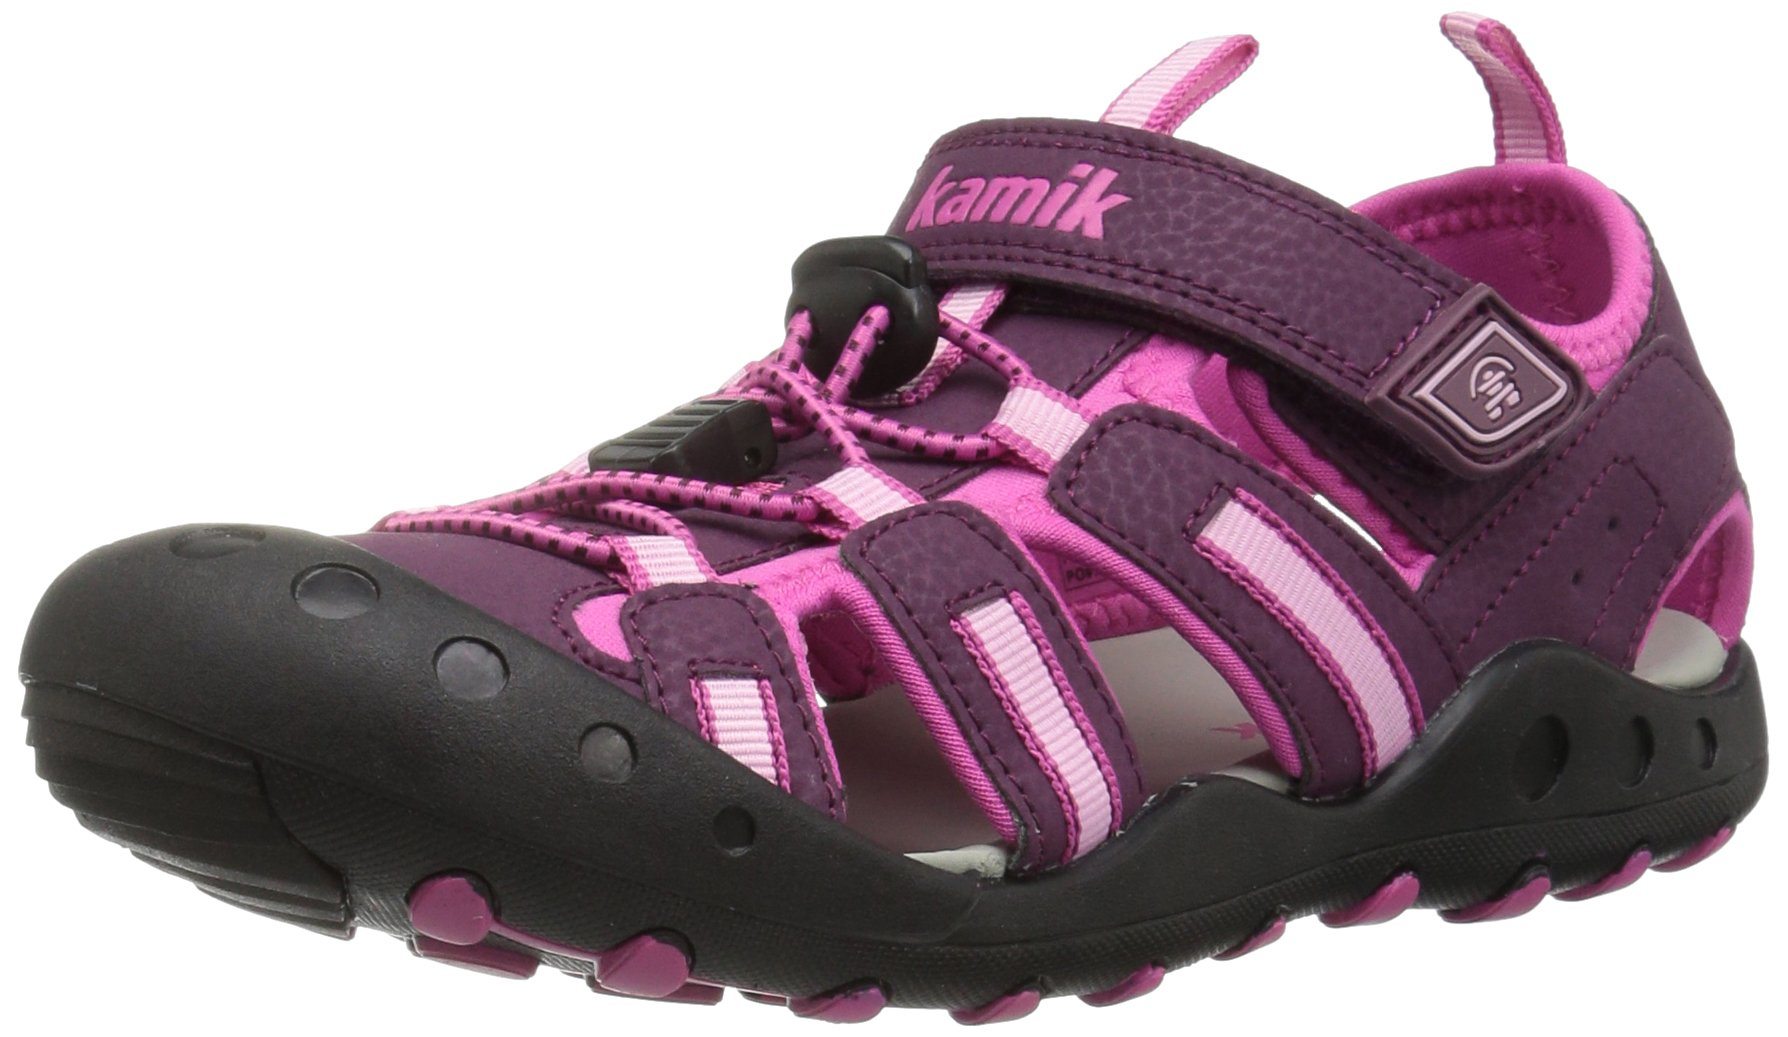 Kamik Toddler Crab Sandals Plum 4 by Kamik (Image #1)